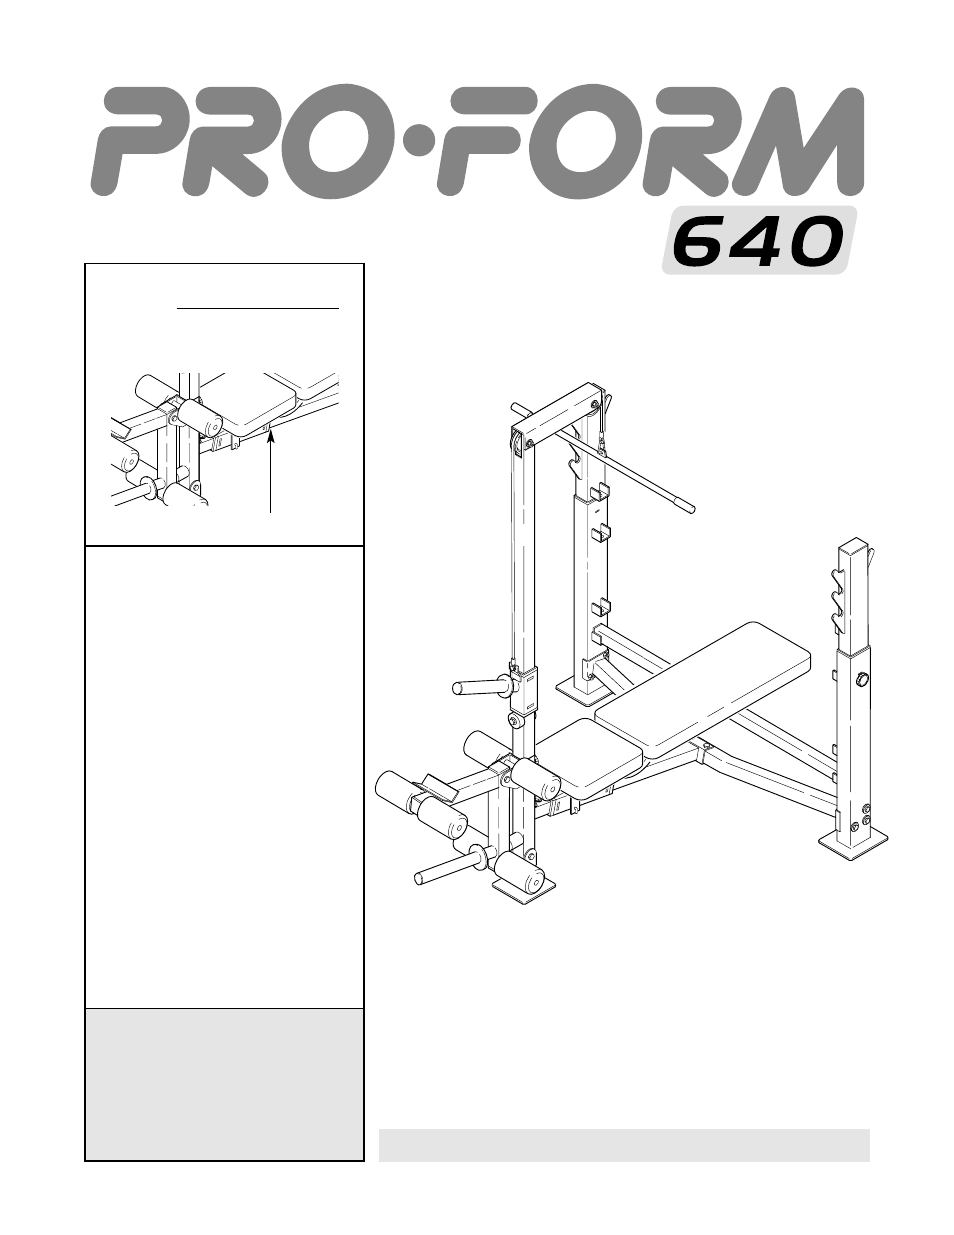 Proform 640 User Manual 23 Pages Treadmill Wiring Diagram